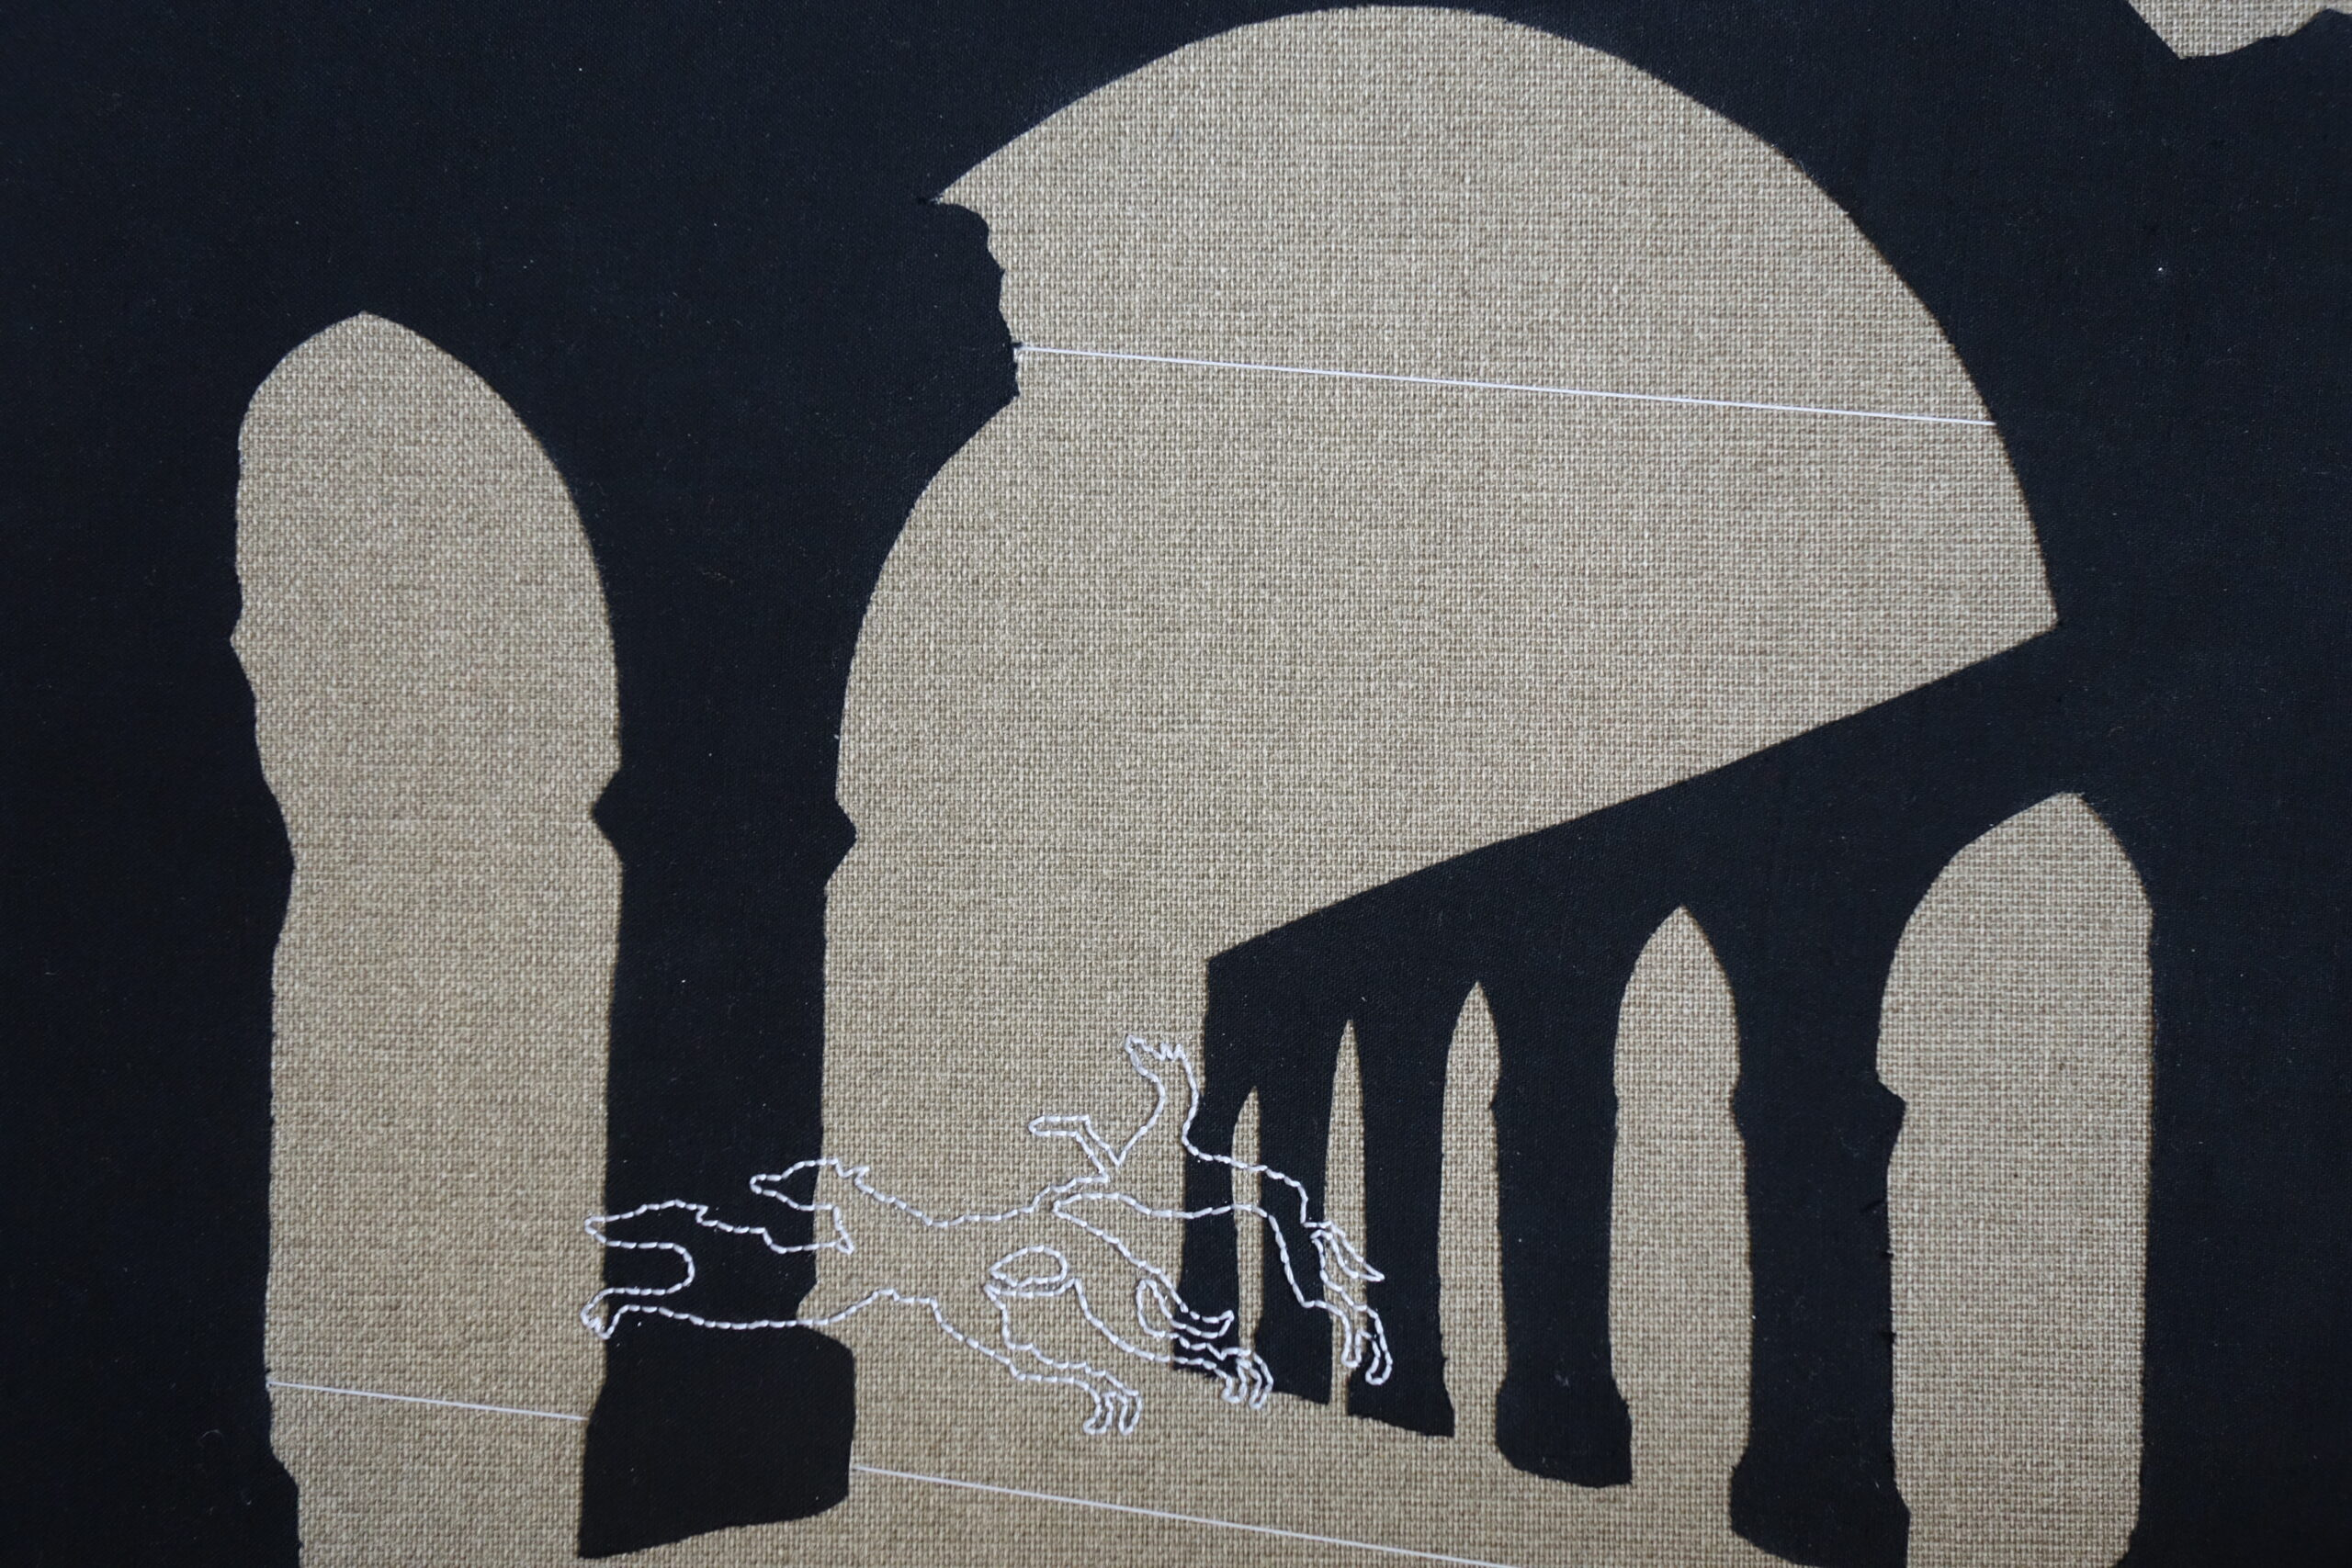 Black silhouettes of arches against a mid brown linen background, with greyhounds outlined in white embroidery